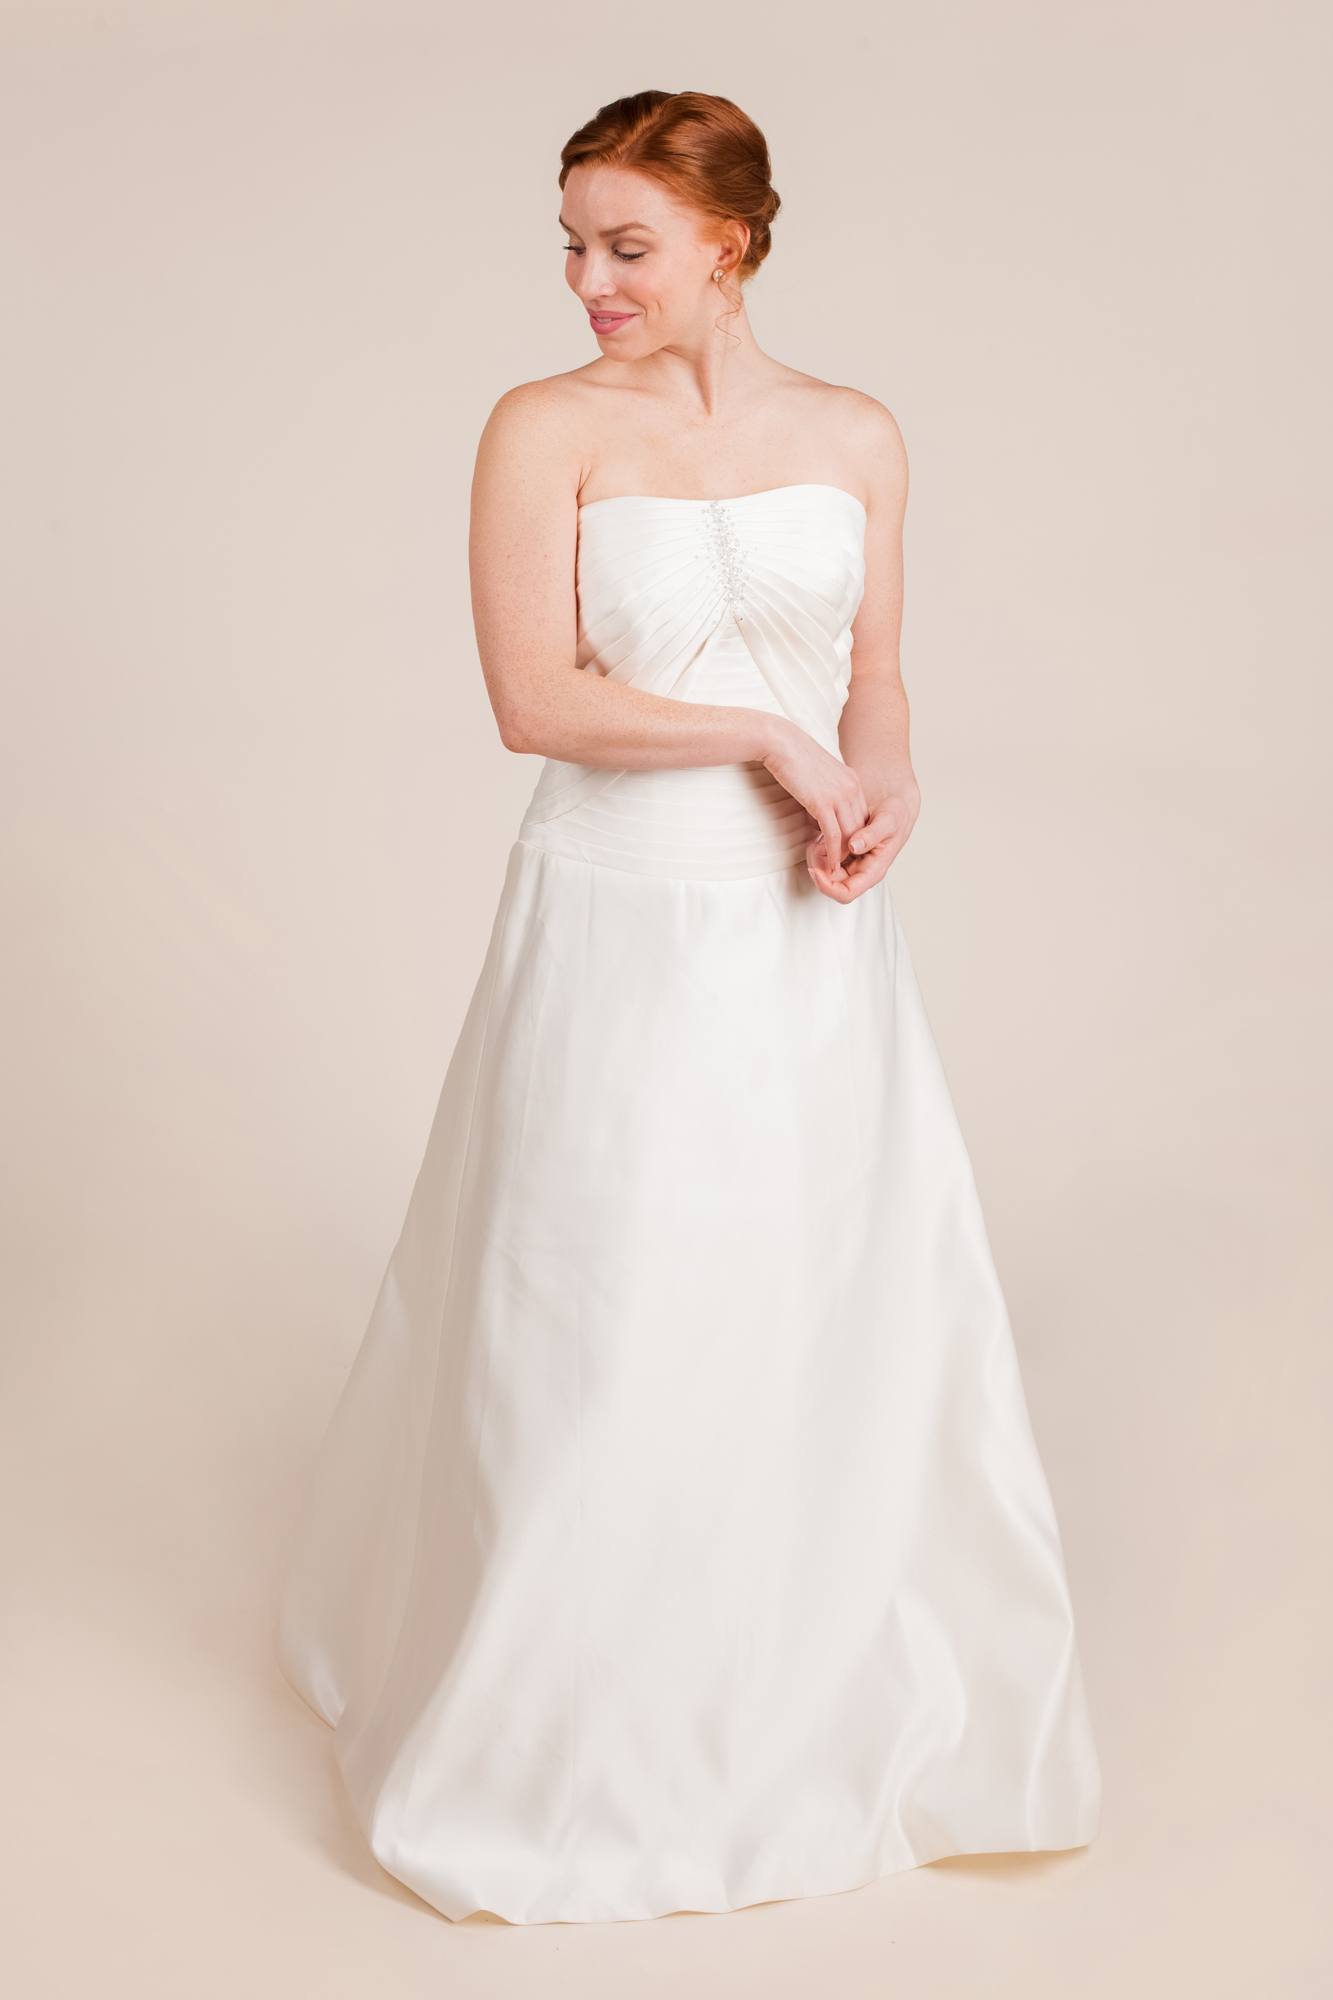 Allure bridals size  - $696 - (46% OFF)